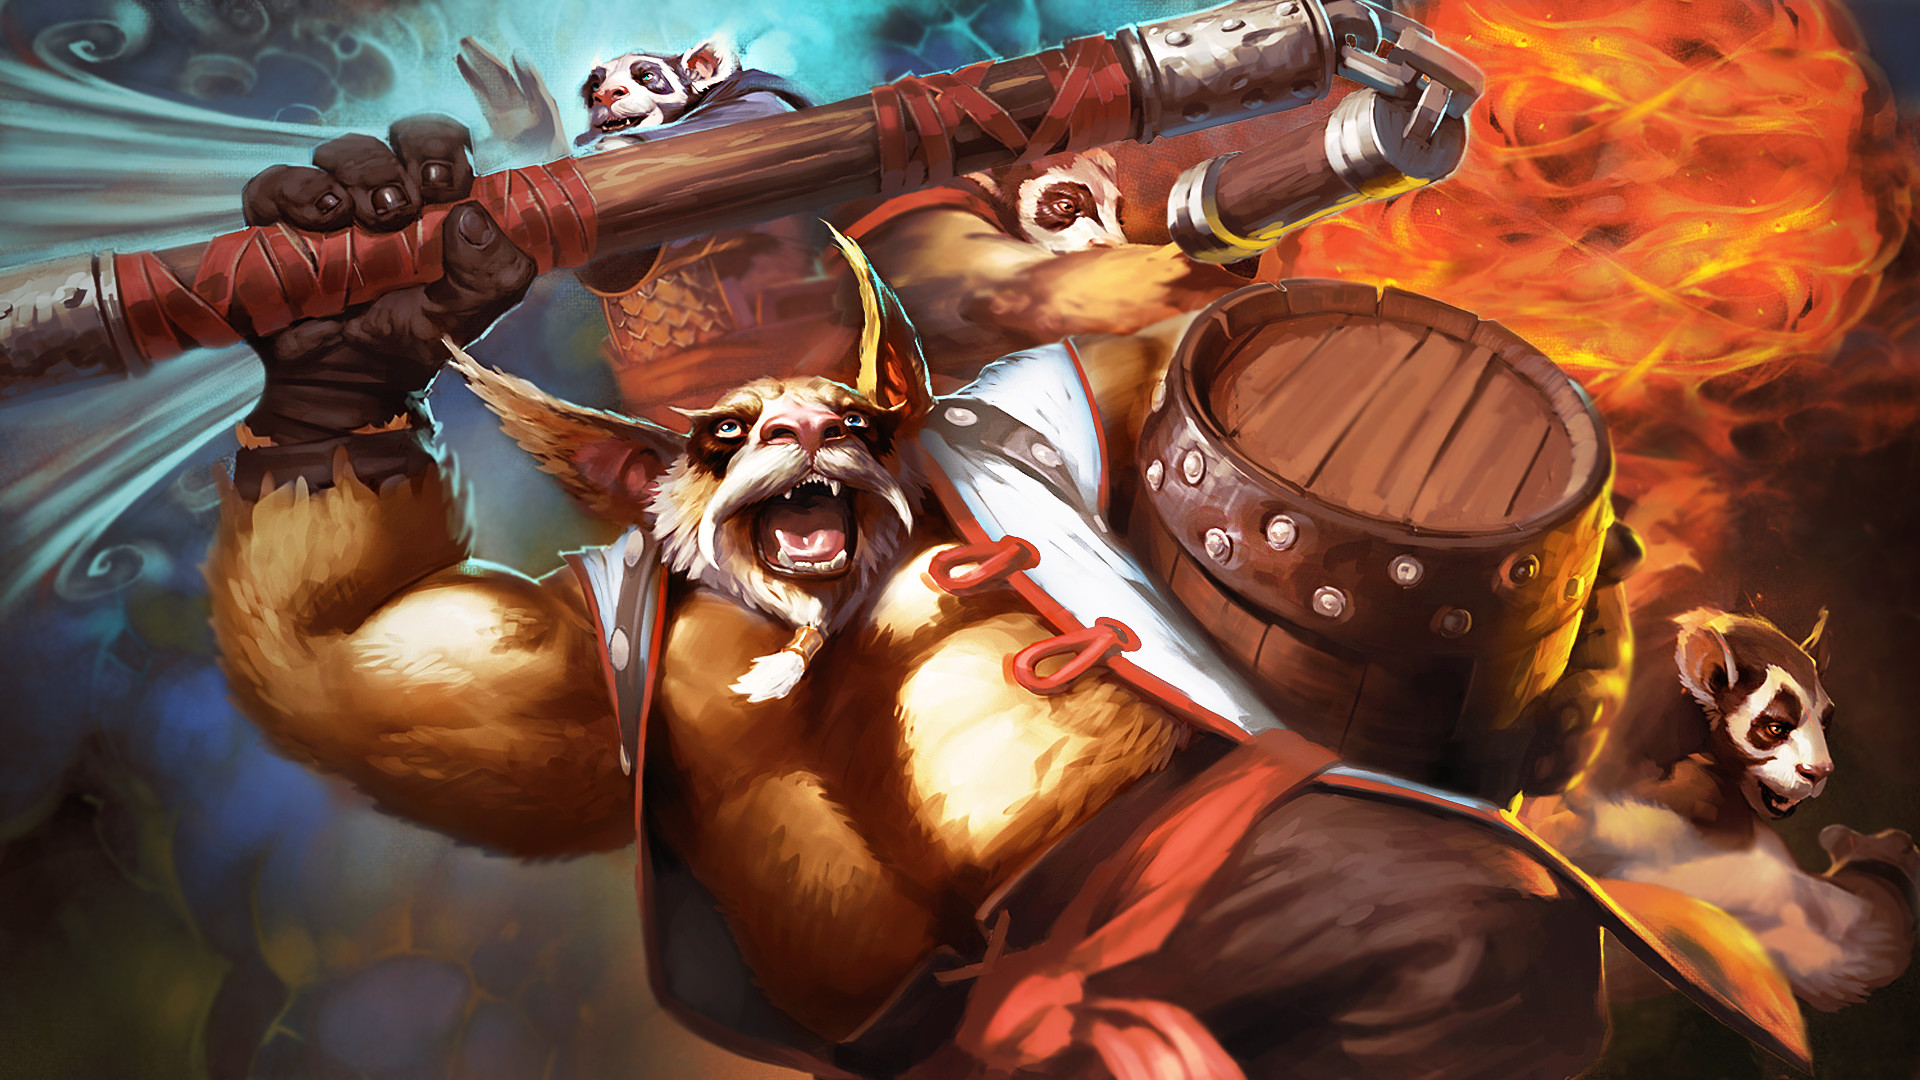 1920x1080 Brewmaster Wallpapers Dota 2 HD Wallpapers #3